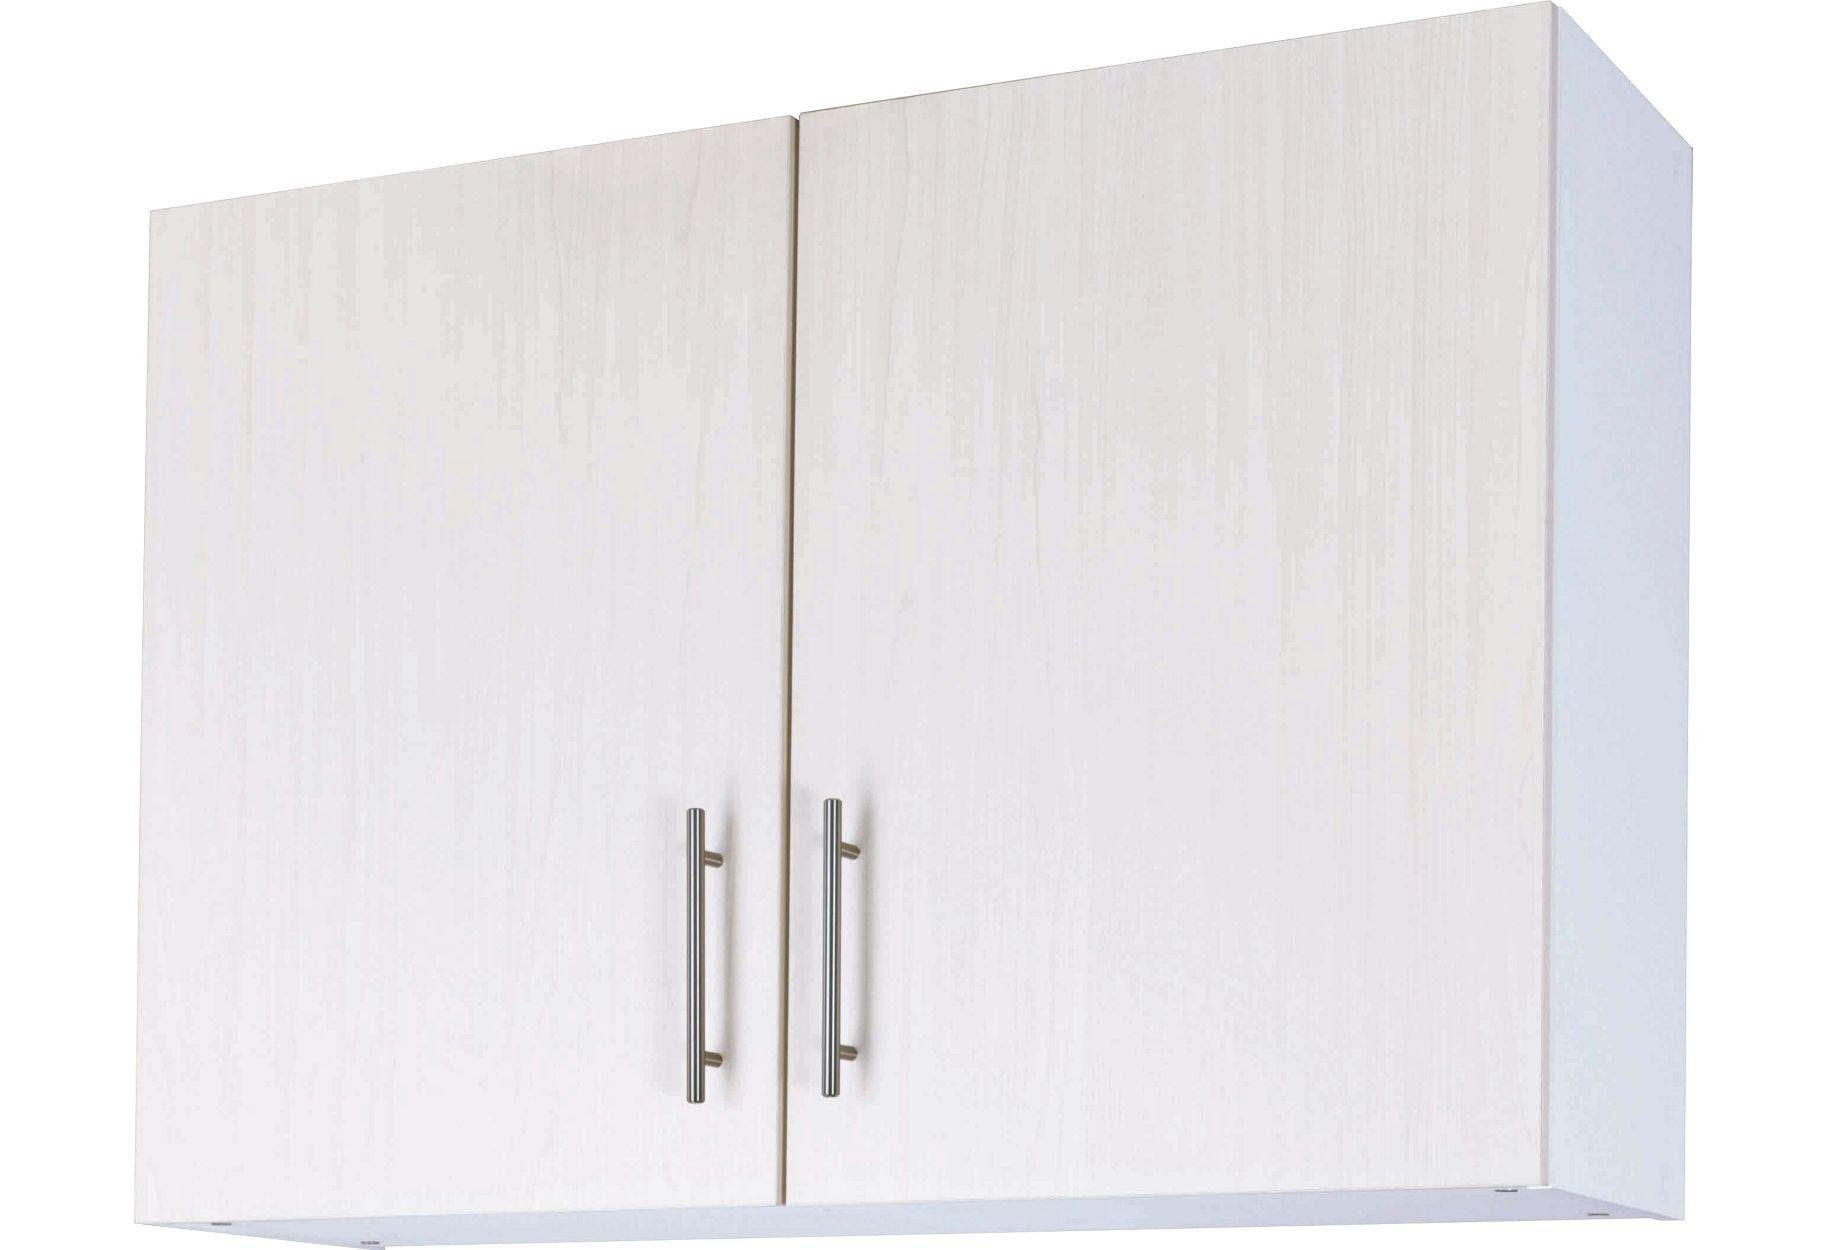 Athina 1000mm Fitted Kitchen Wall Unit - White.